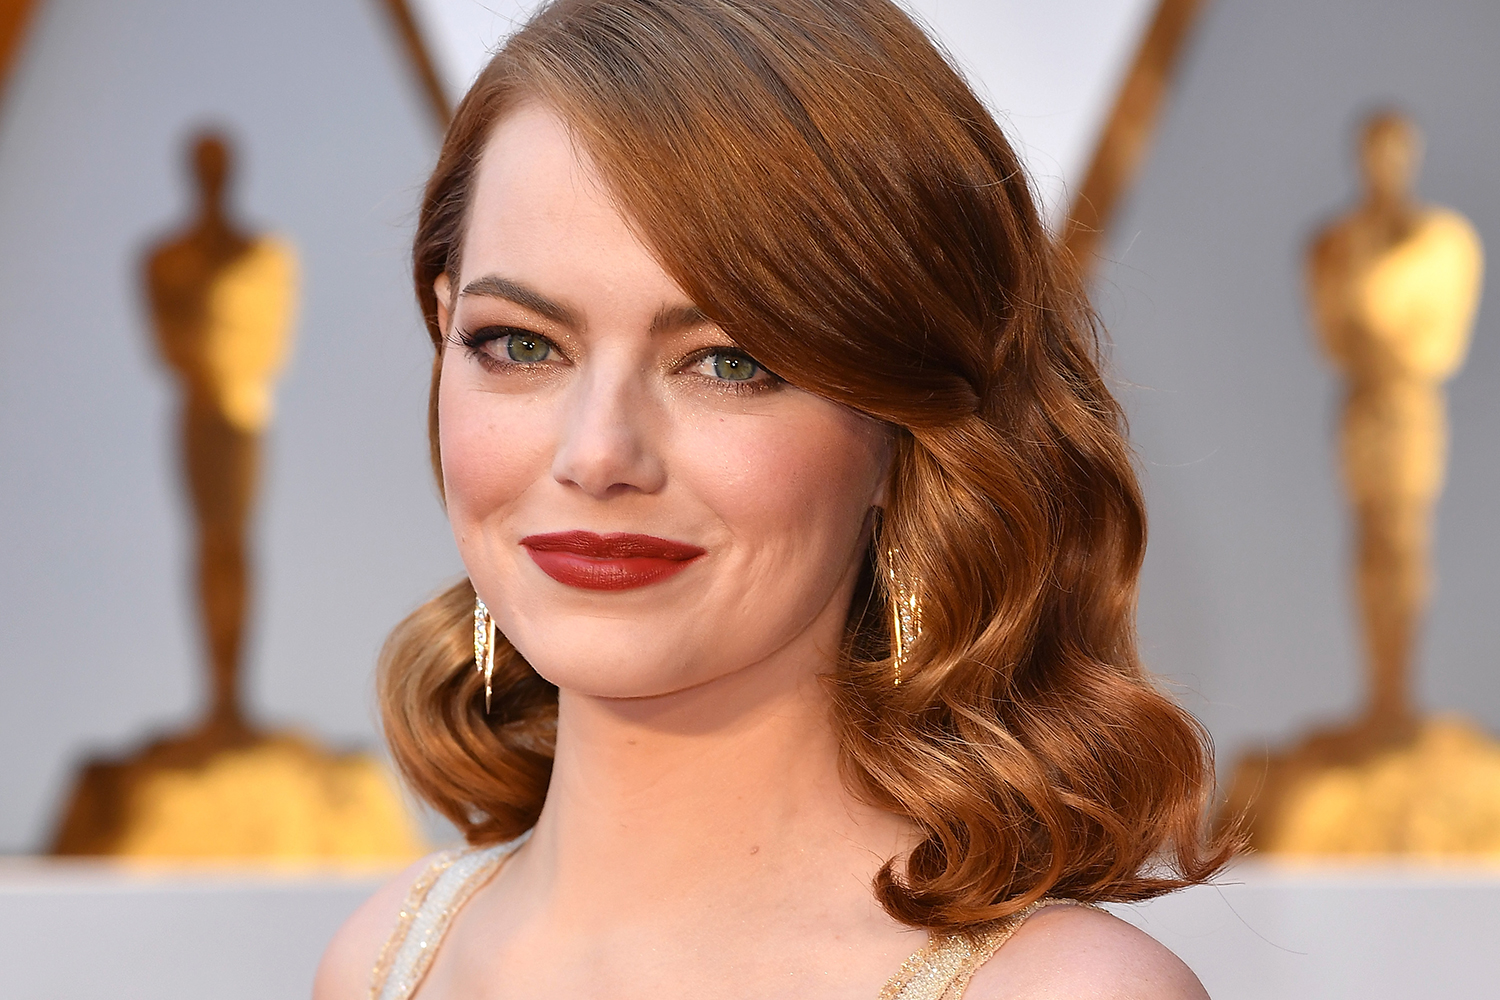 Emma Stone has a new boyfriend